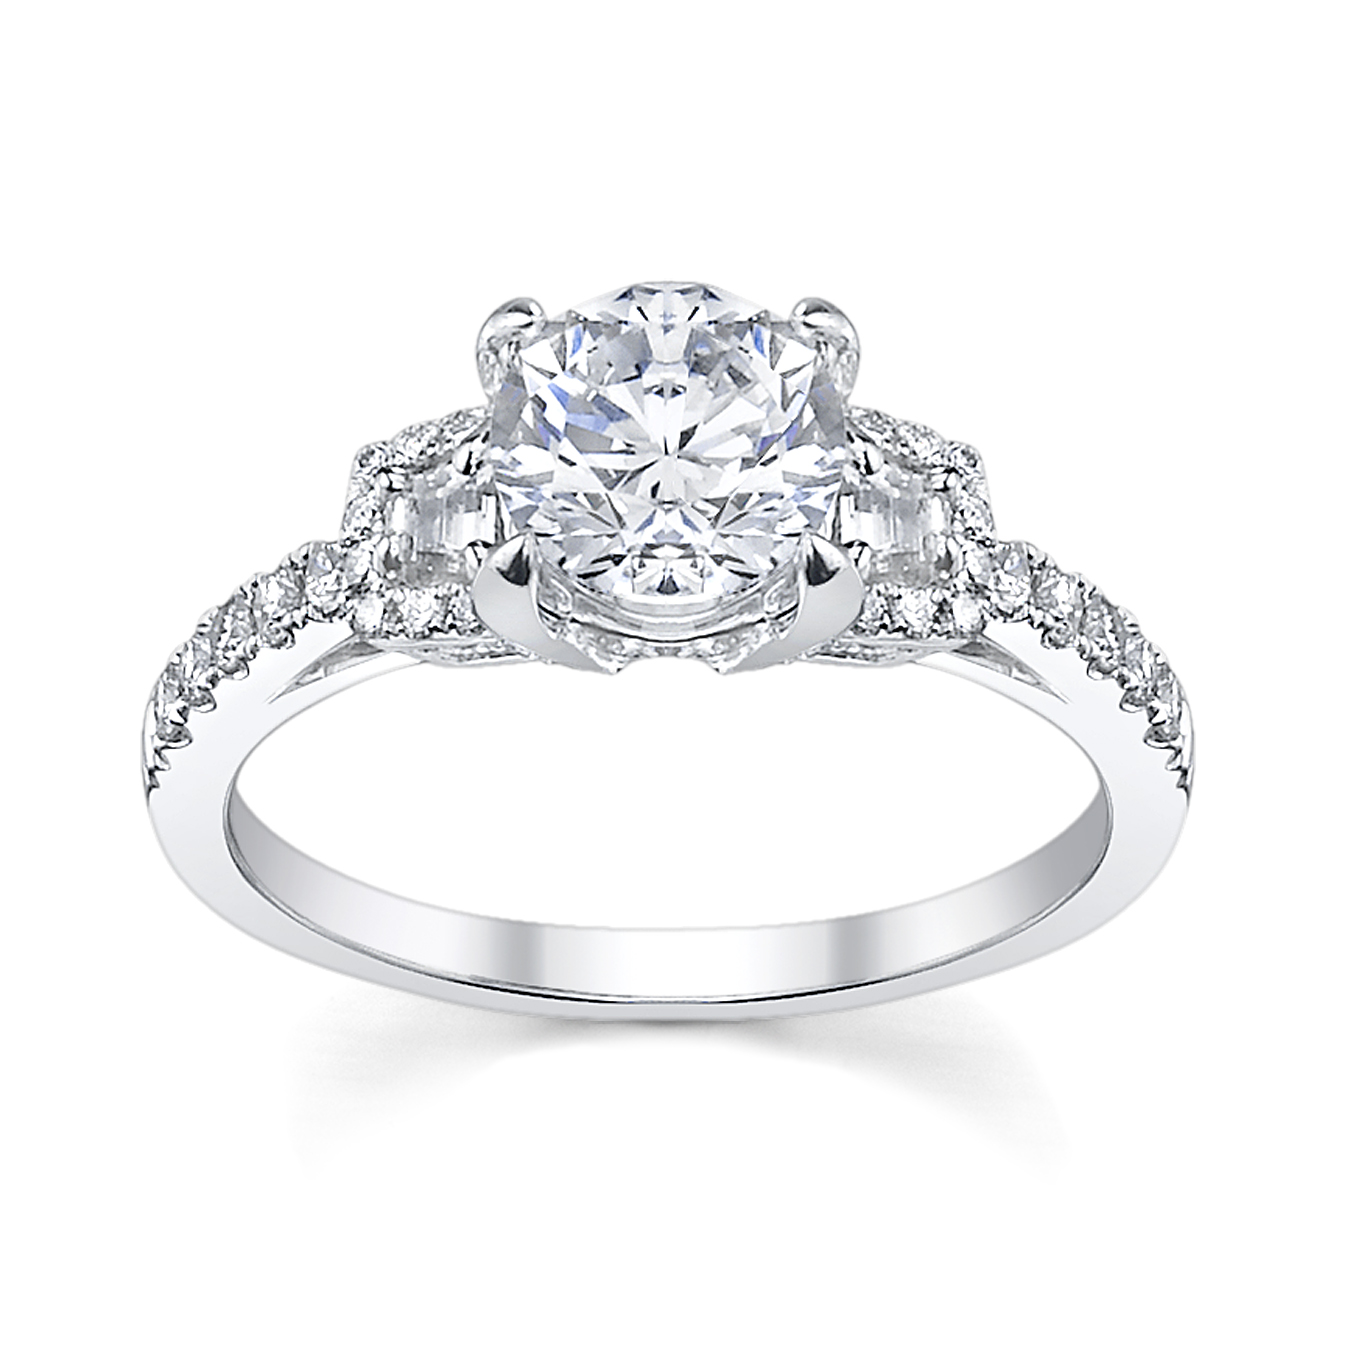 carat rings classy simple know ipunya to things public wedding engagement diamond attachment important promise round